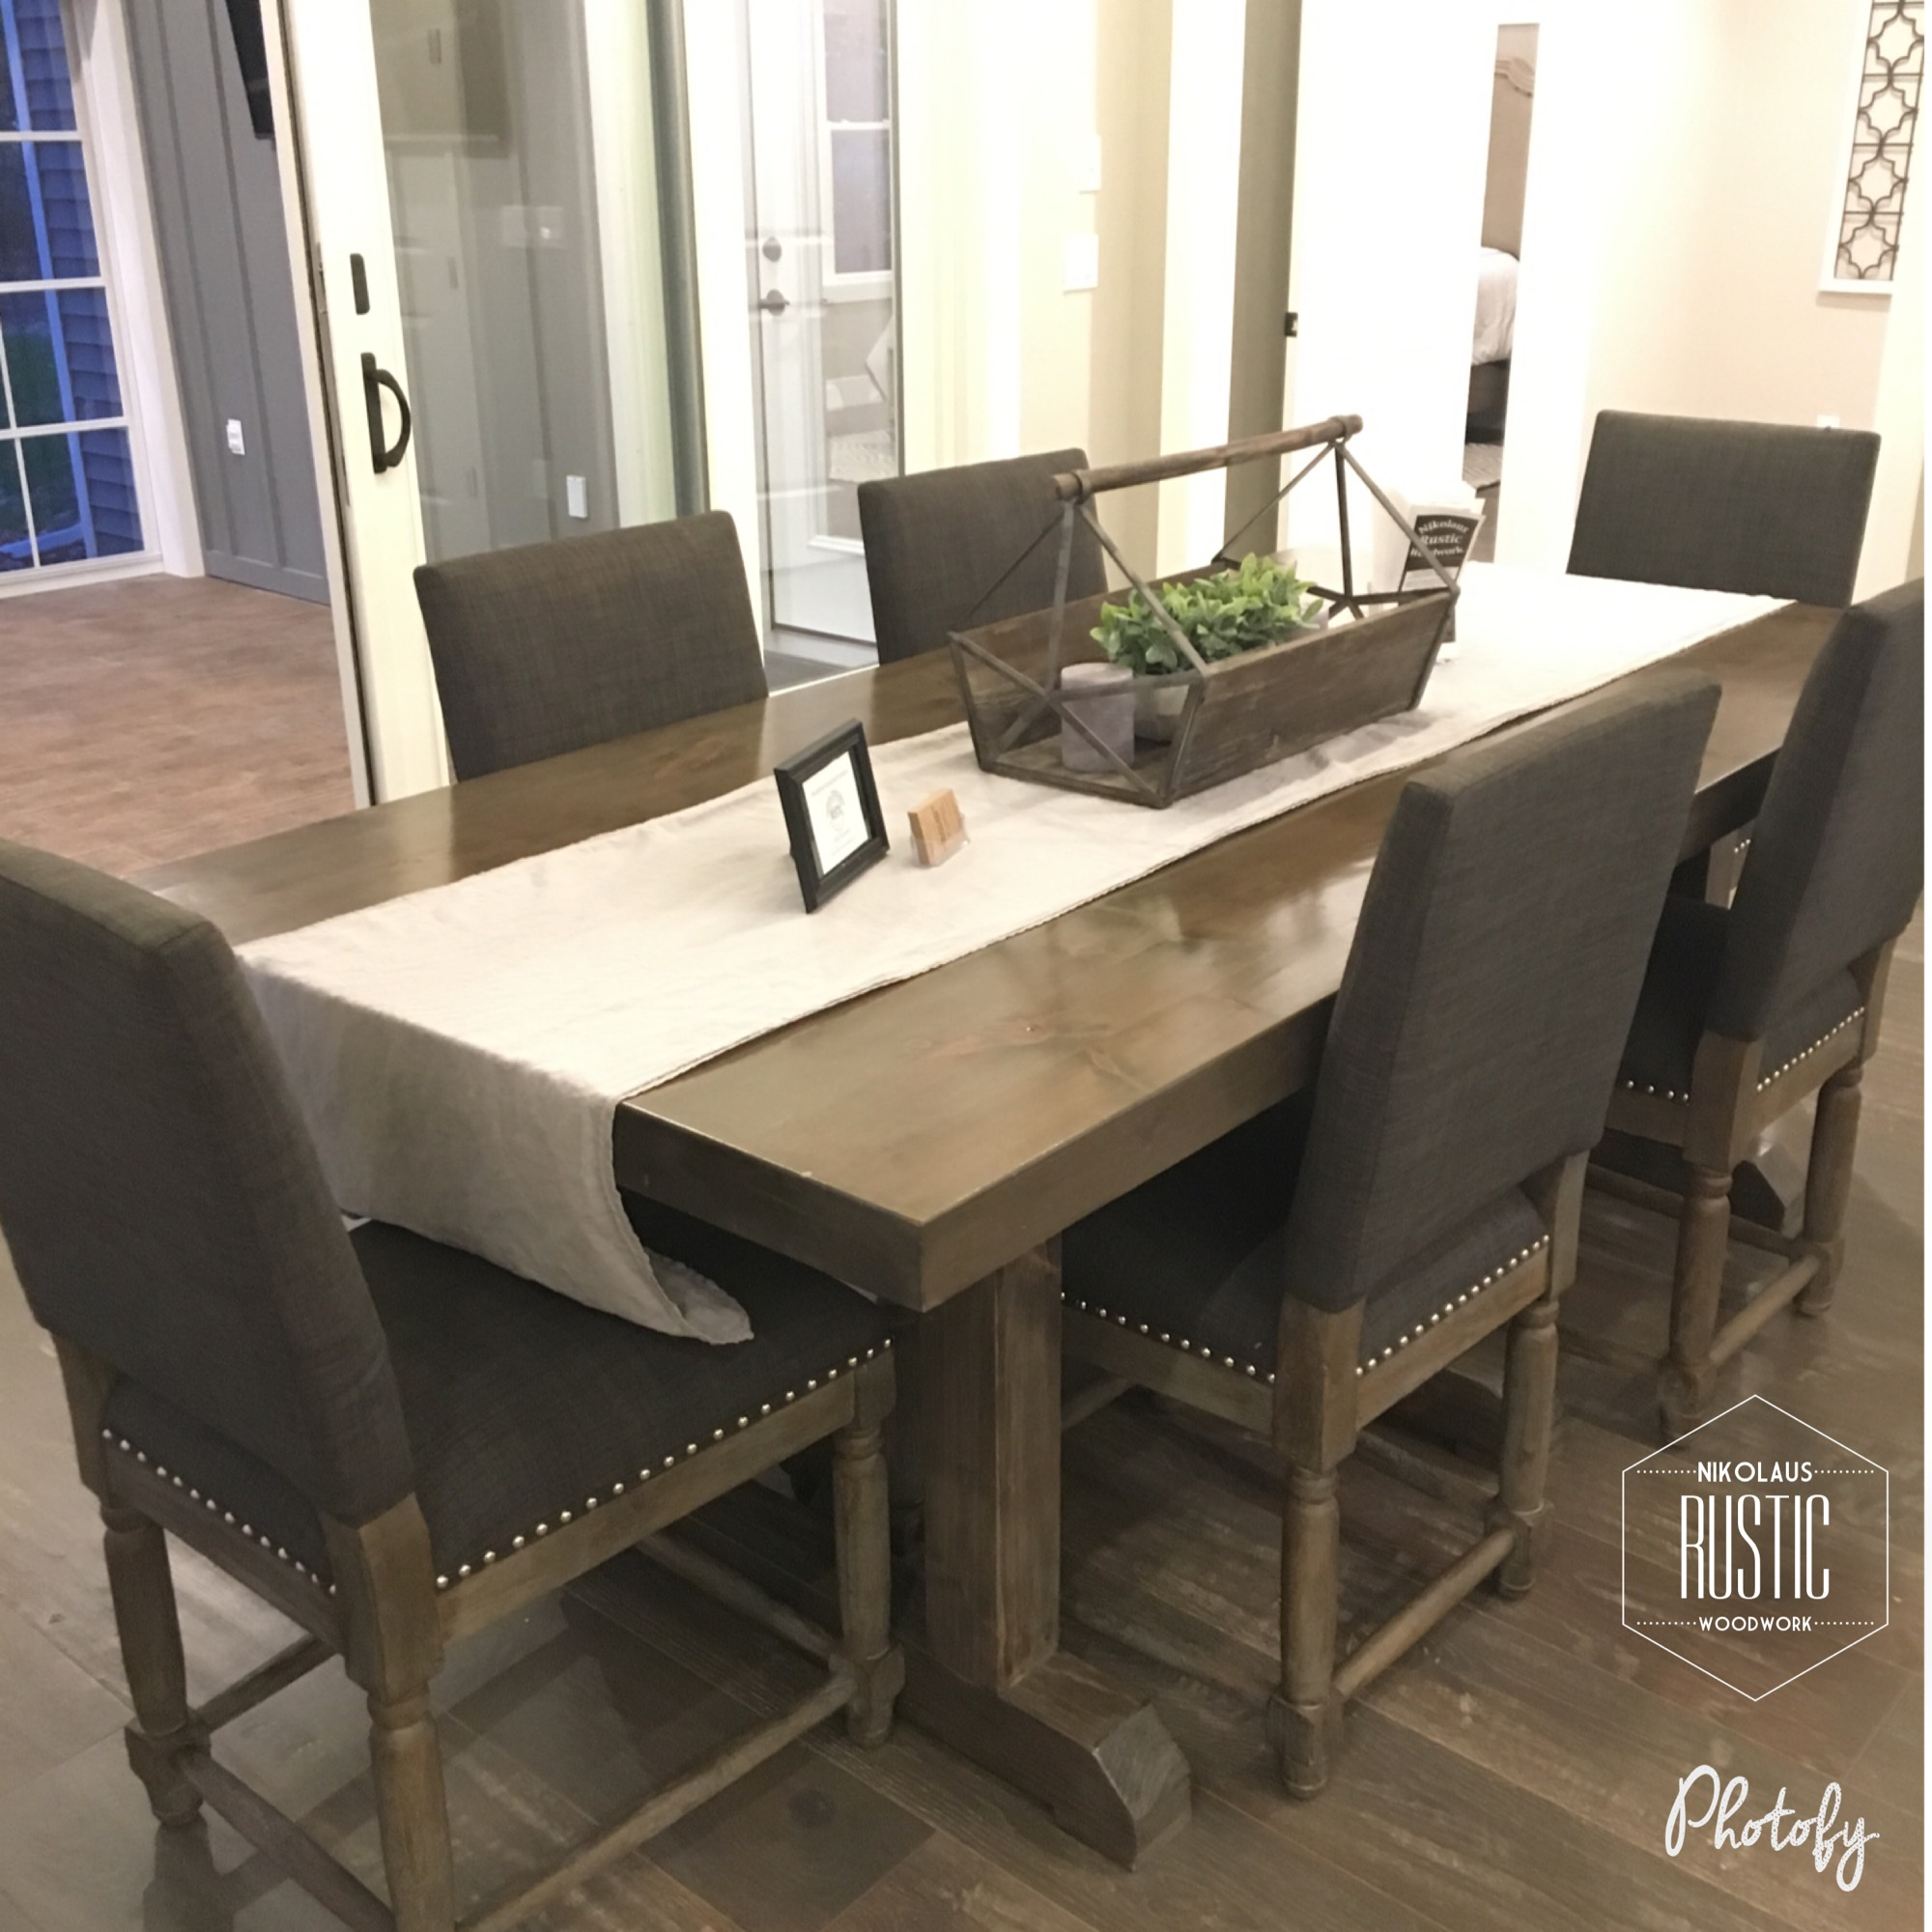 Mixed Hardwood Dining Table: A 6 Ft. Dining Table With Matching Bench,  Created With Mixed Hardwood Reclaimed From A 100+ Year Old Barn From The La  Crosse, ...